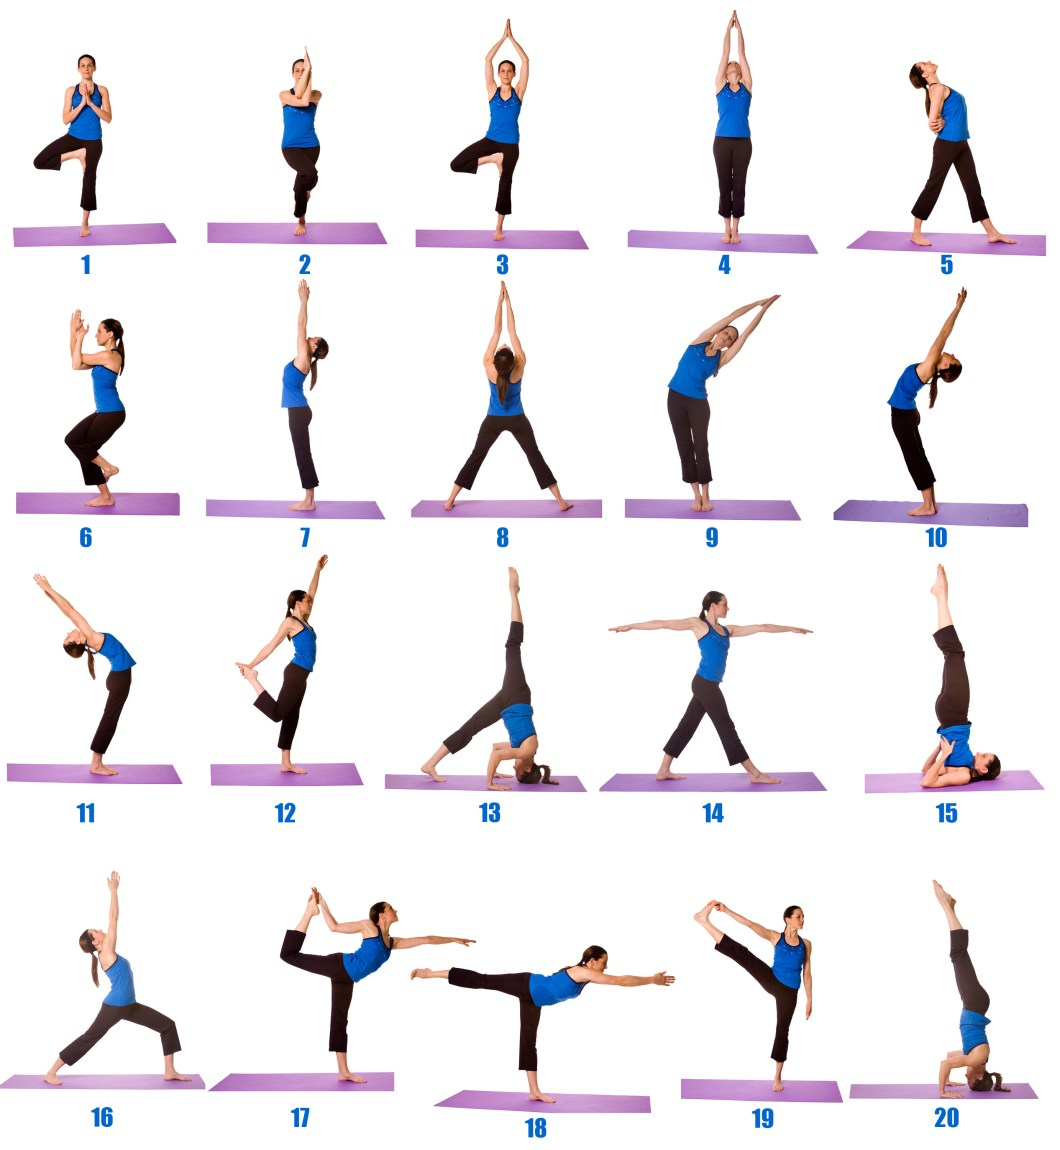 Beginning Yoga Poses For Weight Loss Workout Krtsy